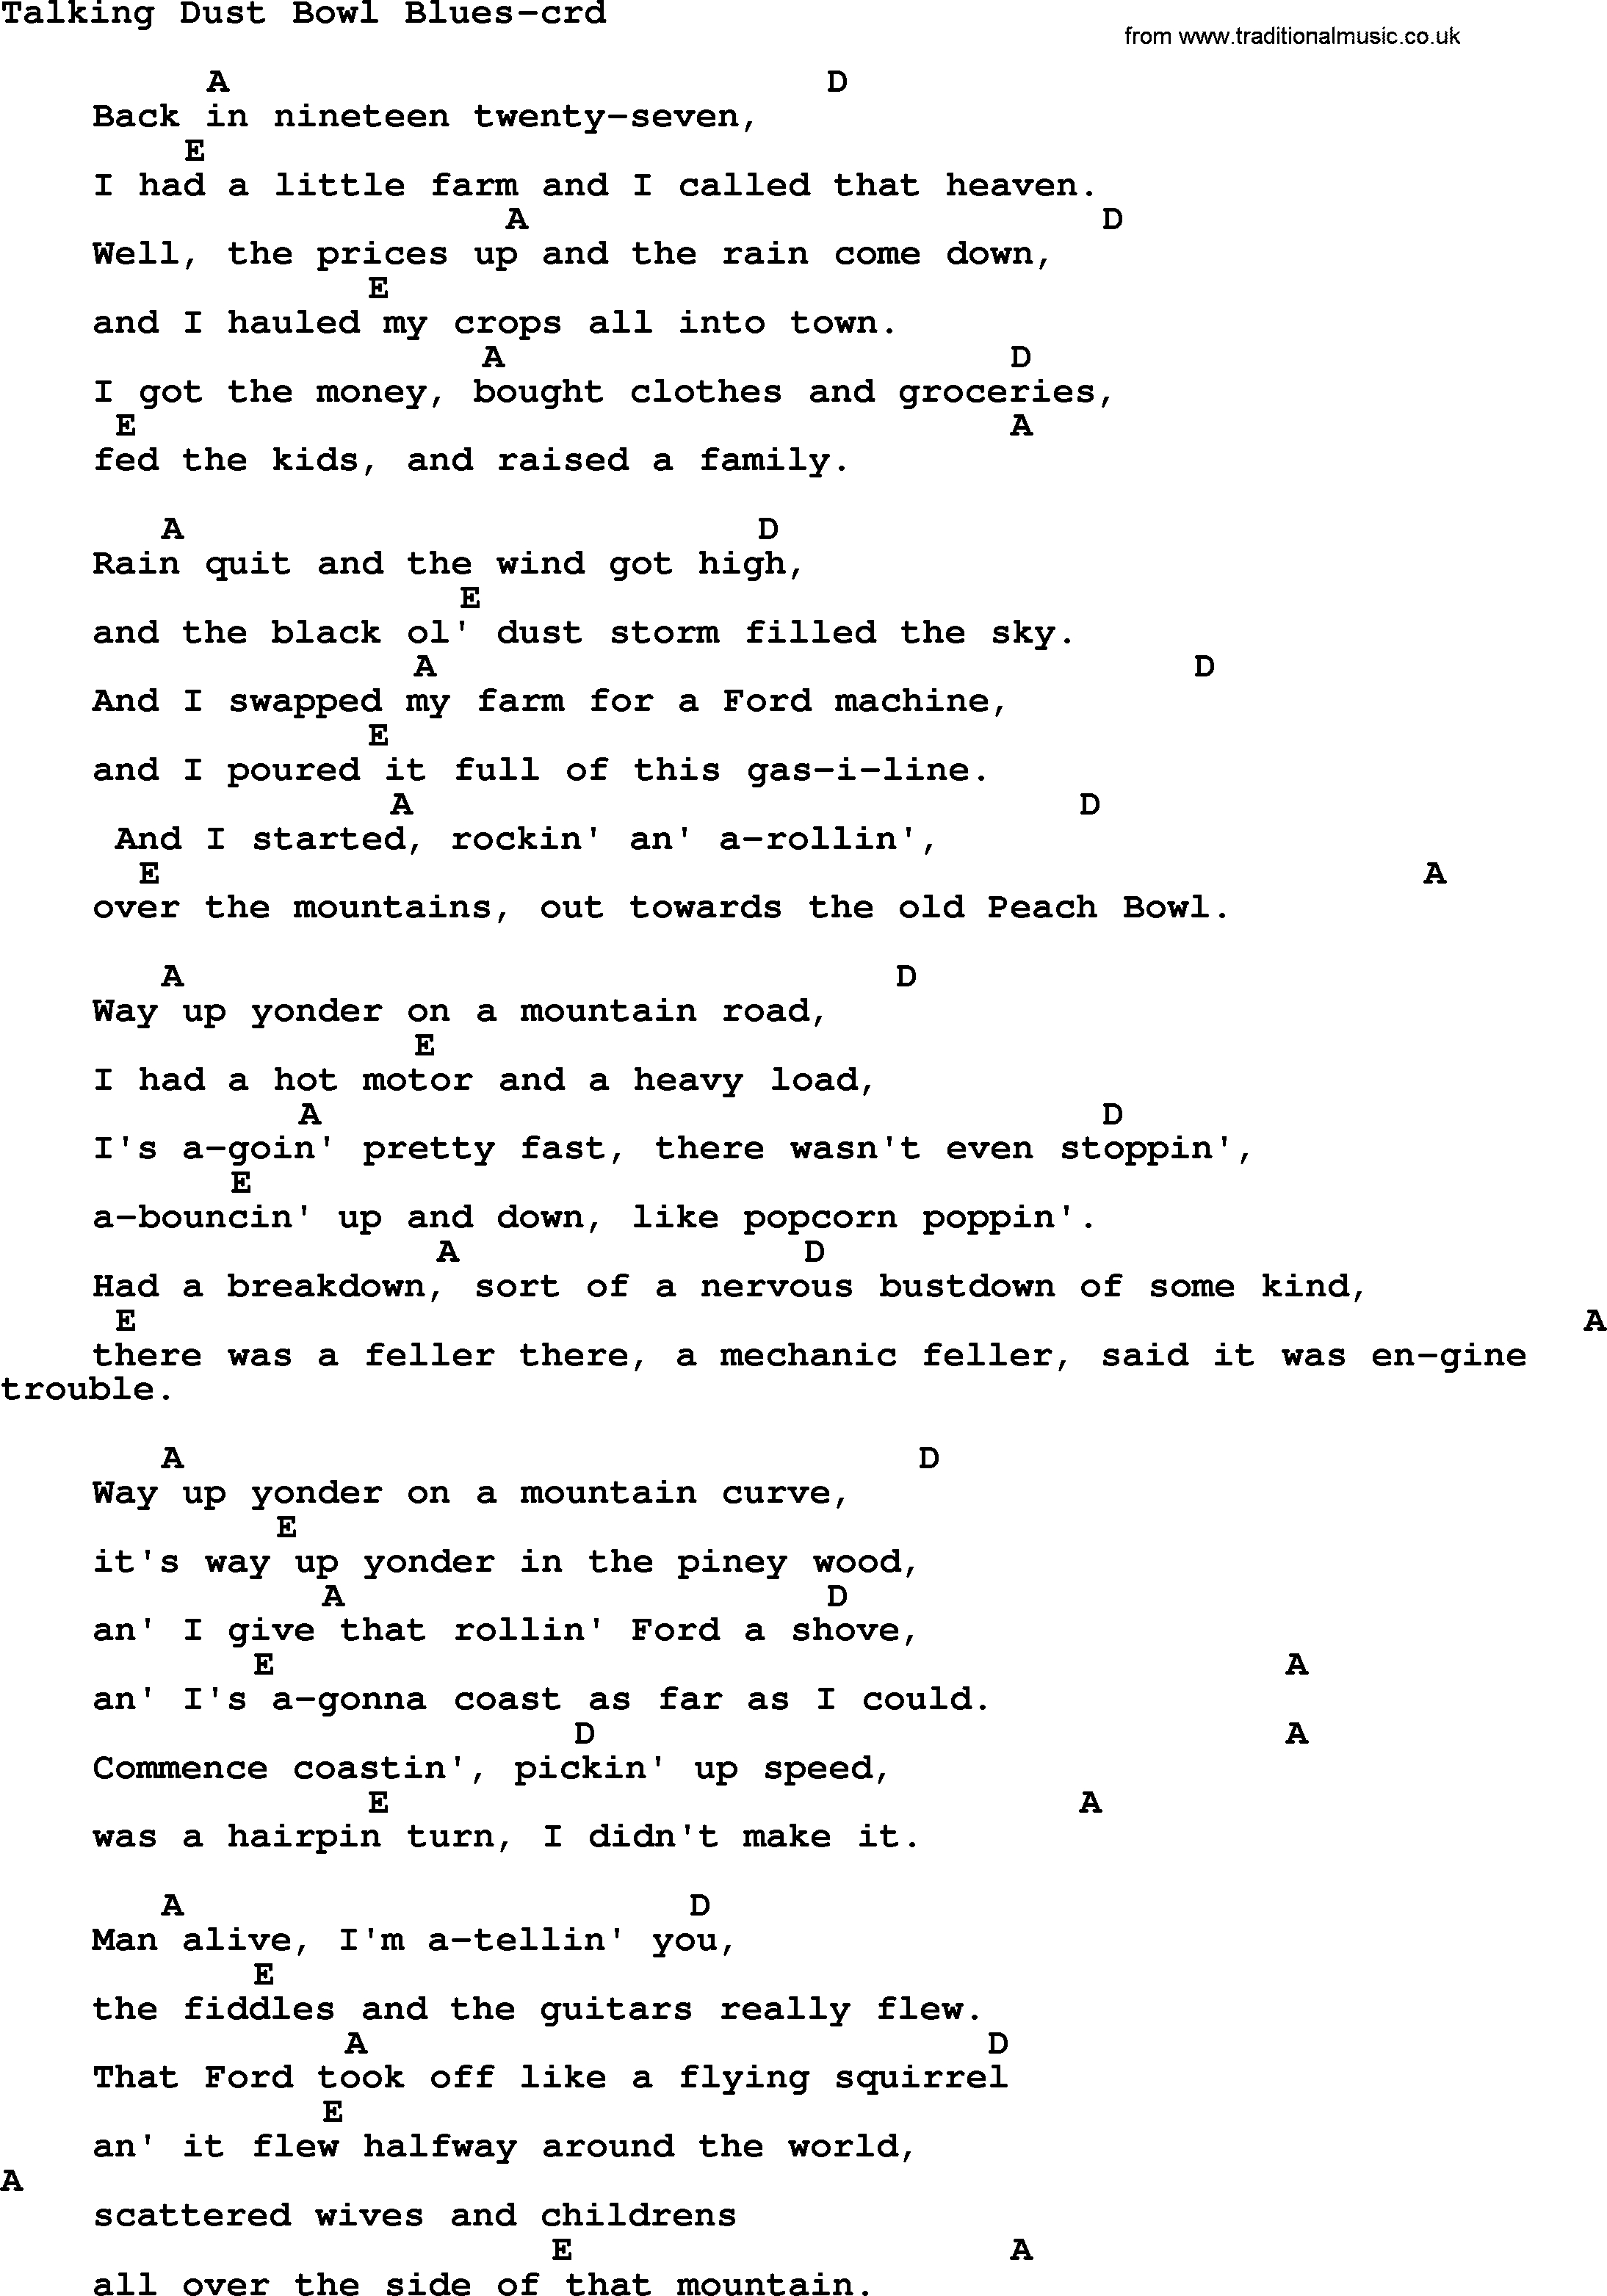 Dust In The Wind Chords Woody Guthrie Song Talking Dust Bowl Blues Lyrics And Chords